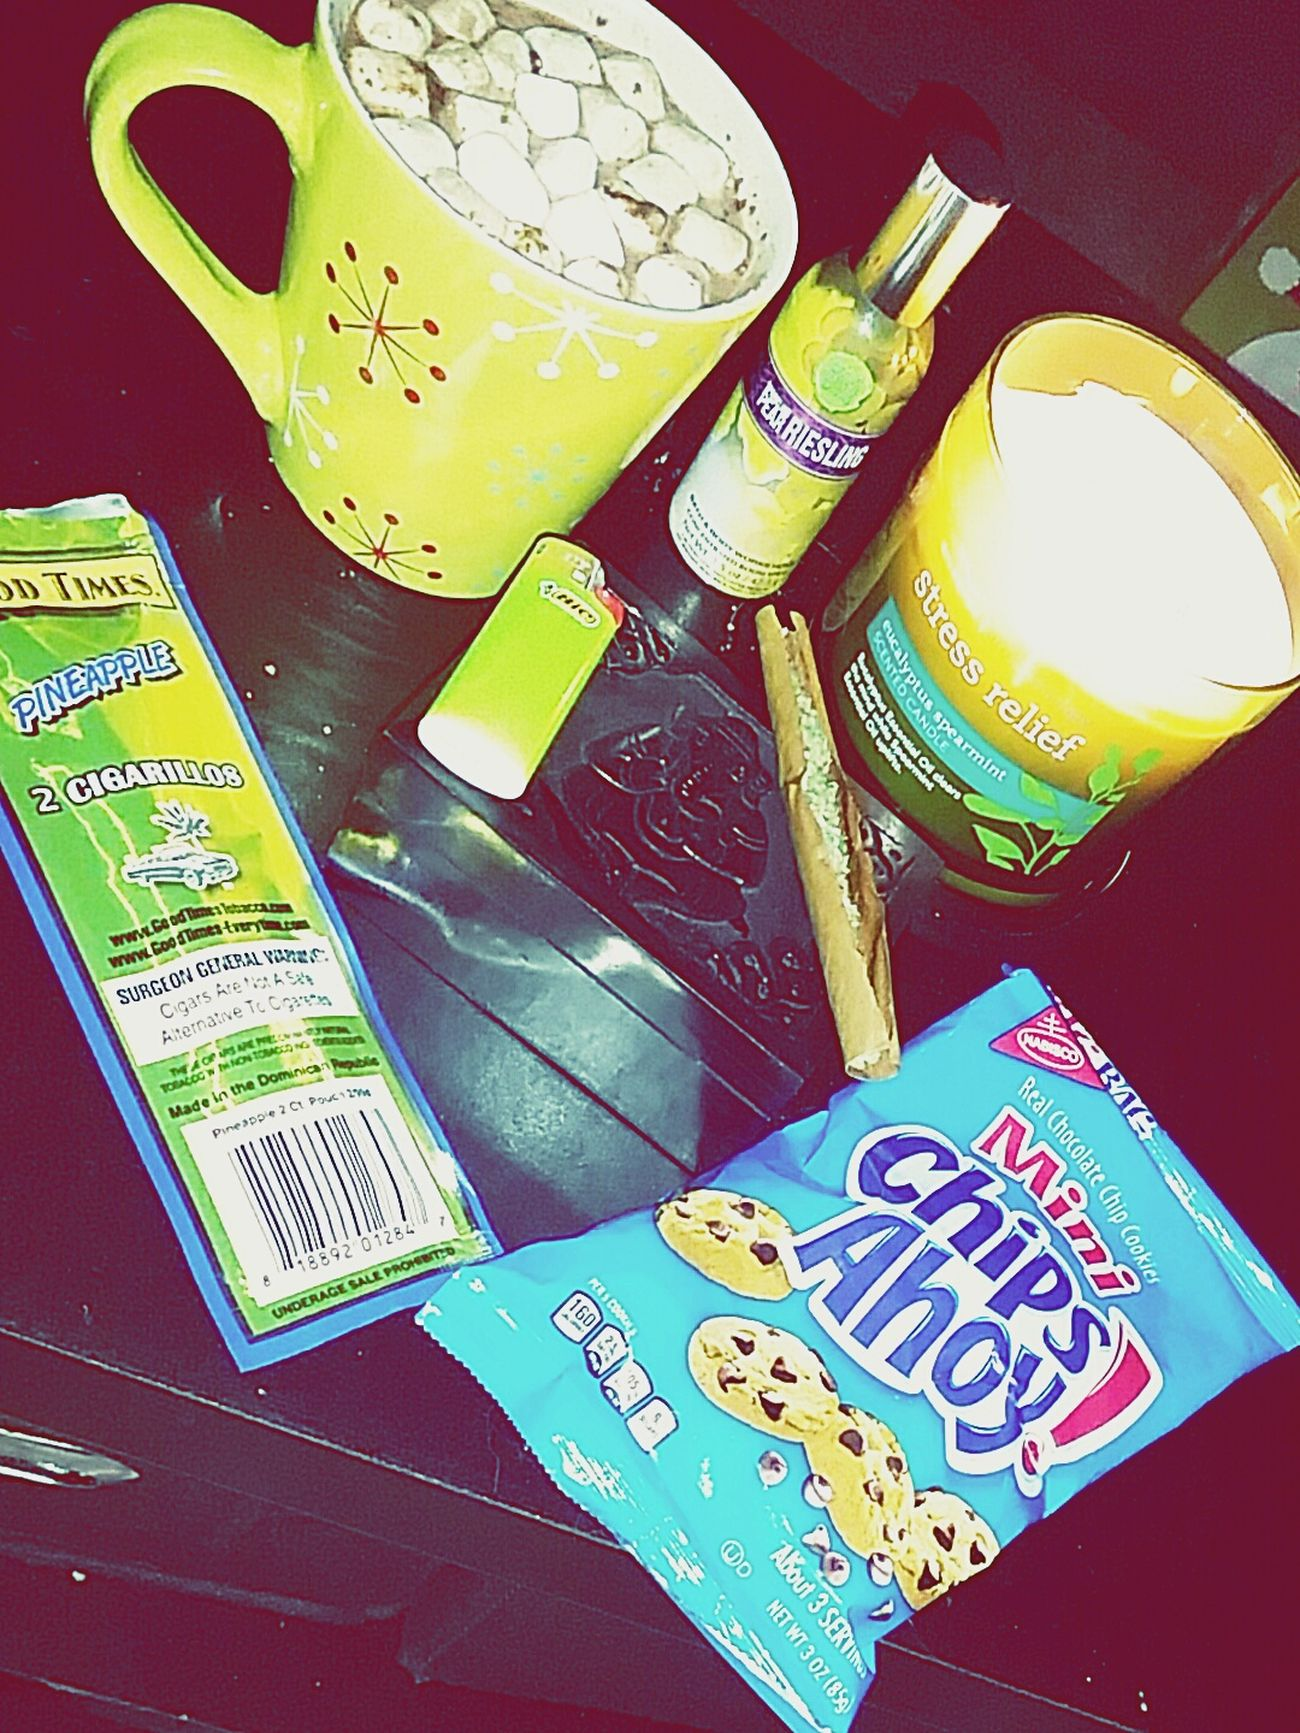 Relax Blunt Blunt Wraps Pineapple Hot Chocolate Munchies Chipsahoy Elephant Good Times Smokeweedeveryday High Life Stress Relief Candles BURNBABYBURN